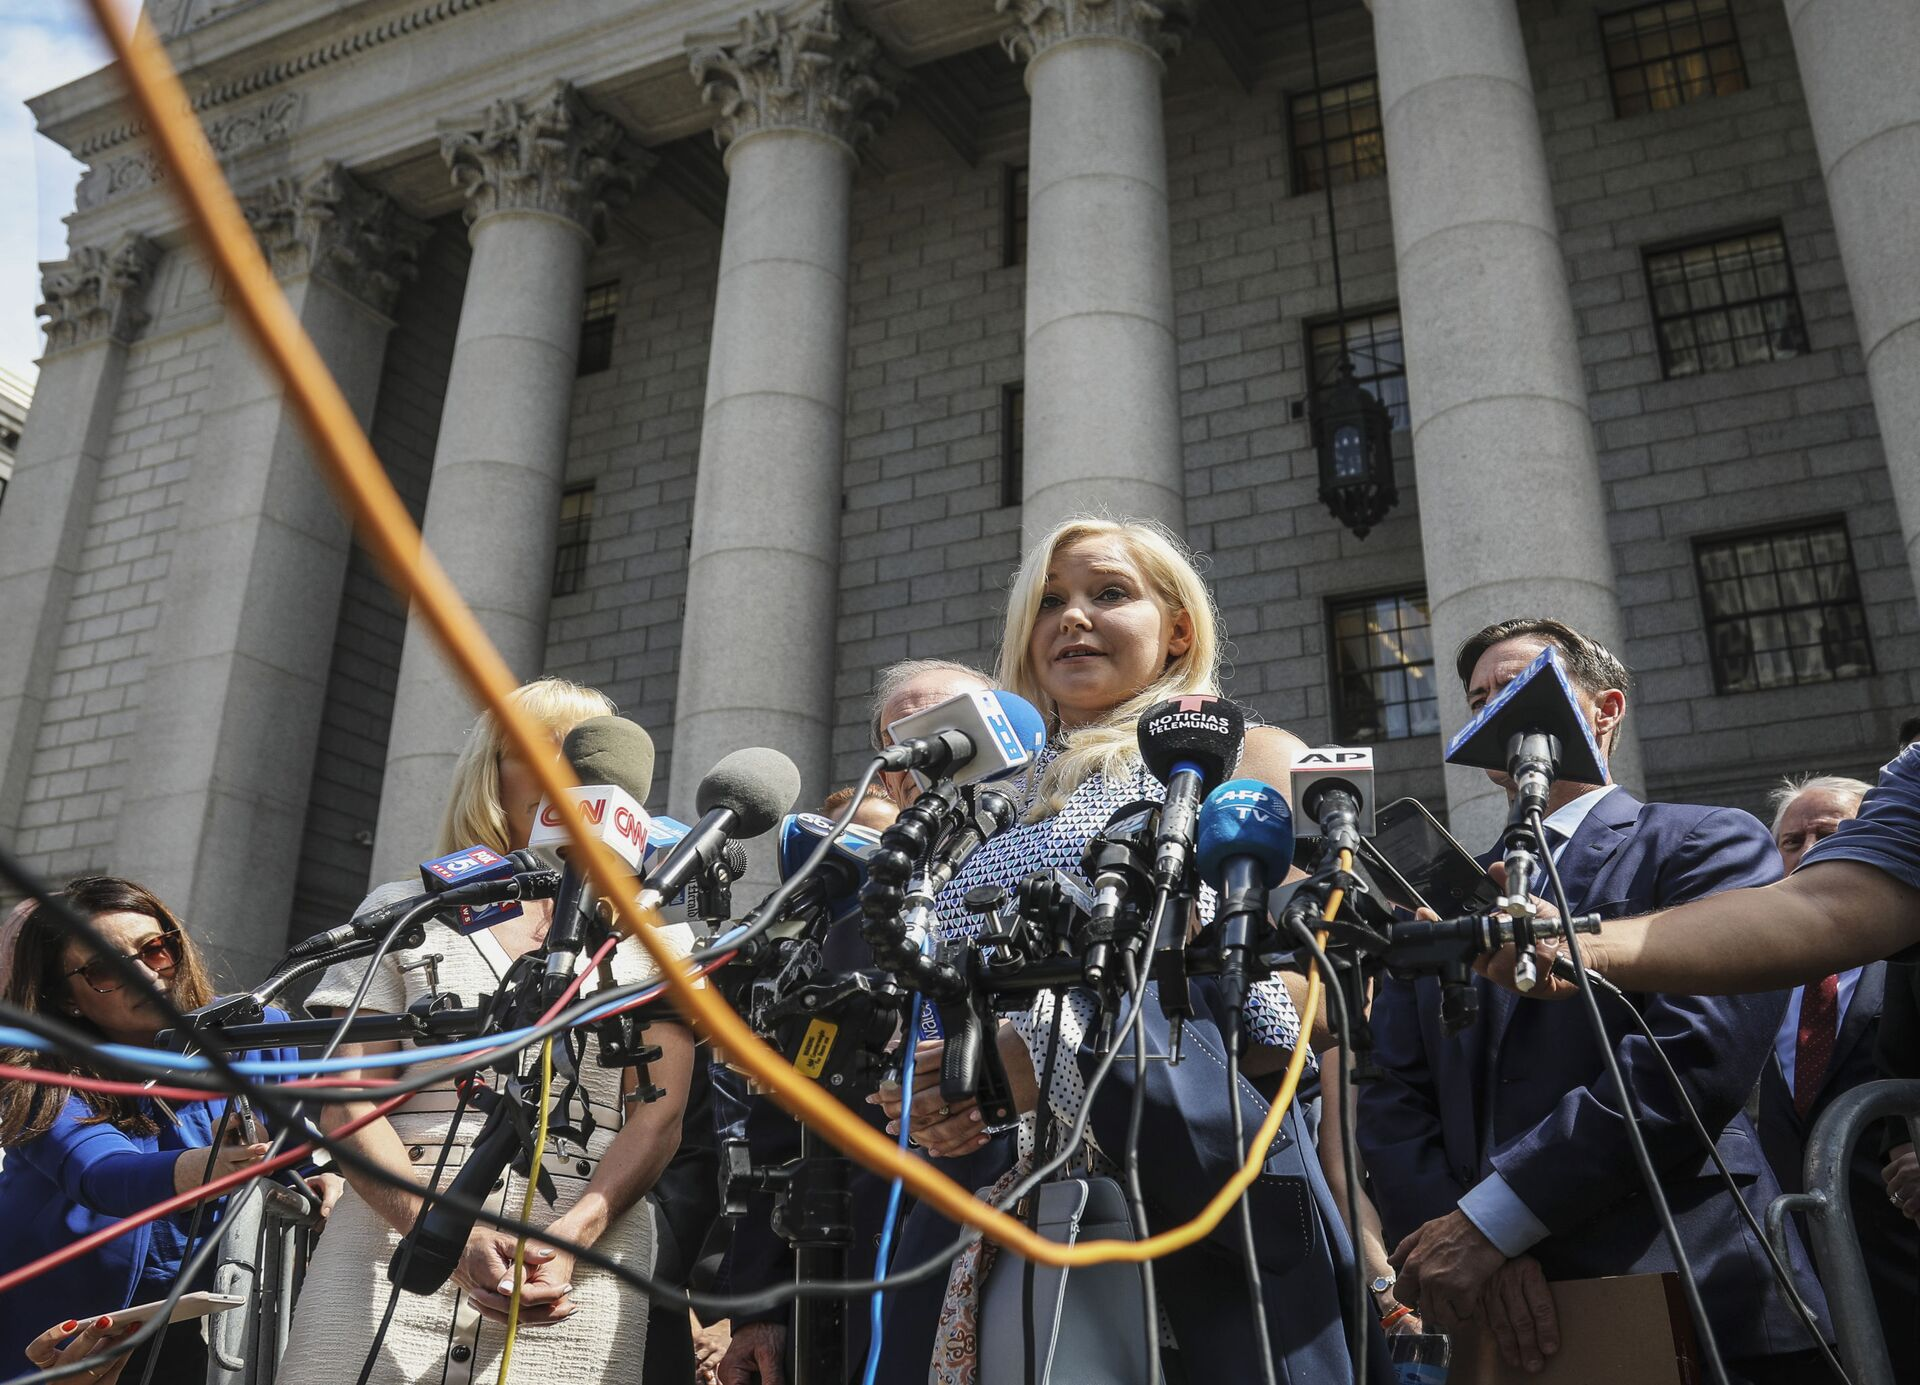 Virginia Roberts Giuffre, center, who says she was trafficked by sex offender Jeffrey Epstein, holds a news conference outside a Manhattan court - Sputnik International, 1920, 07.09.2021